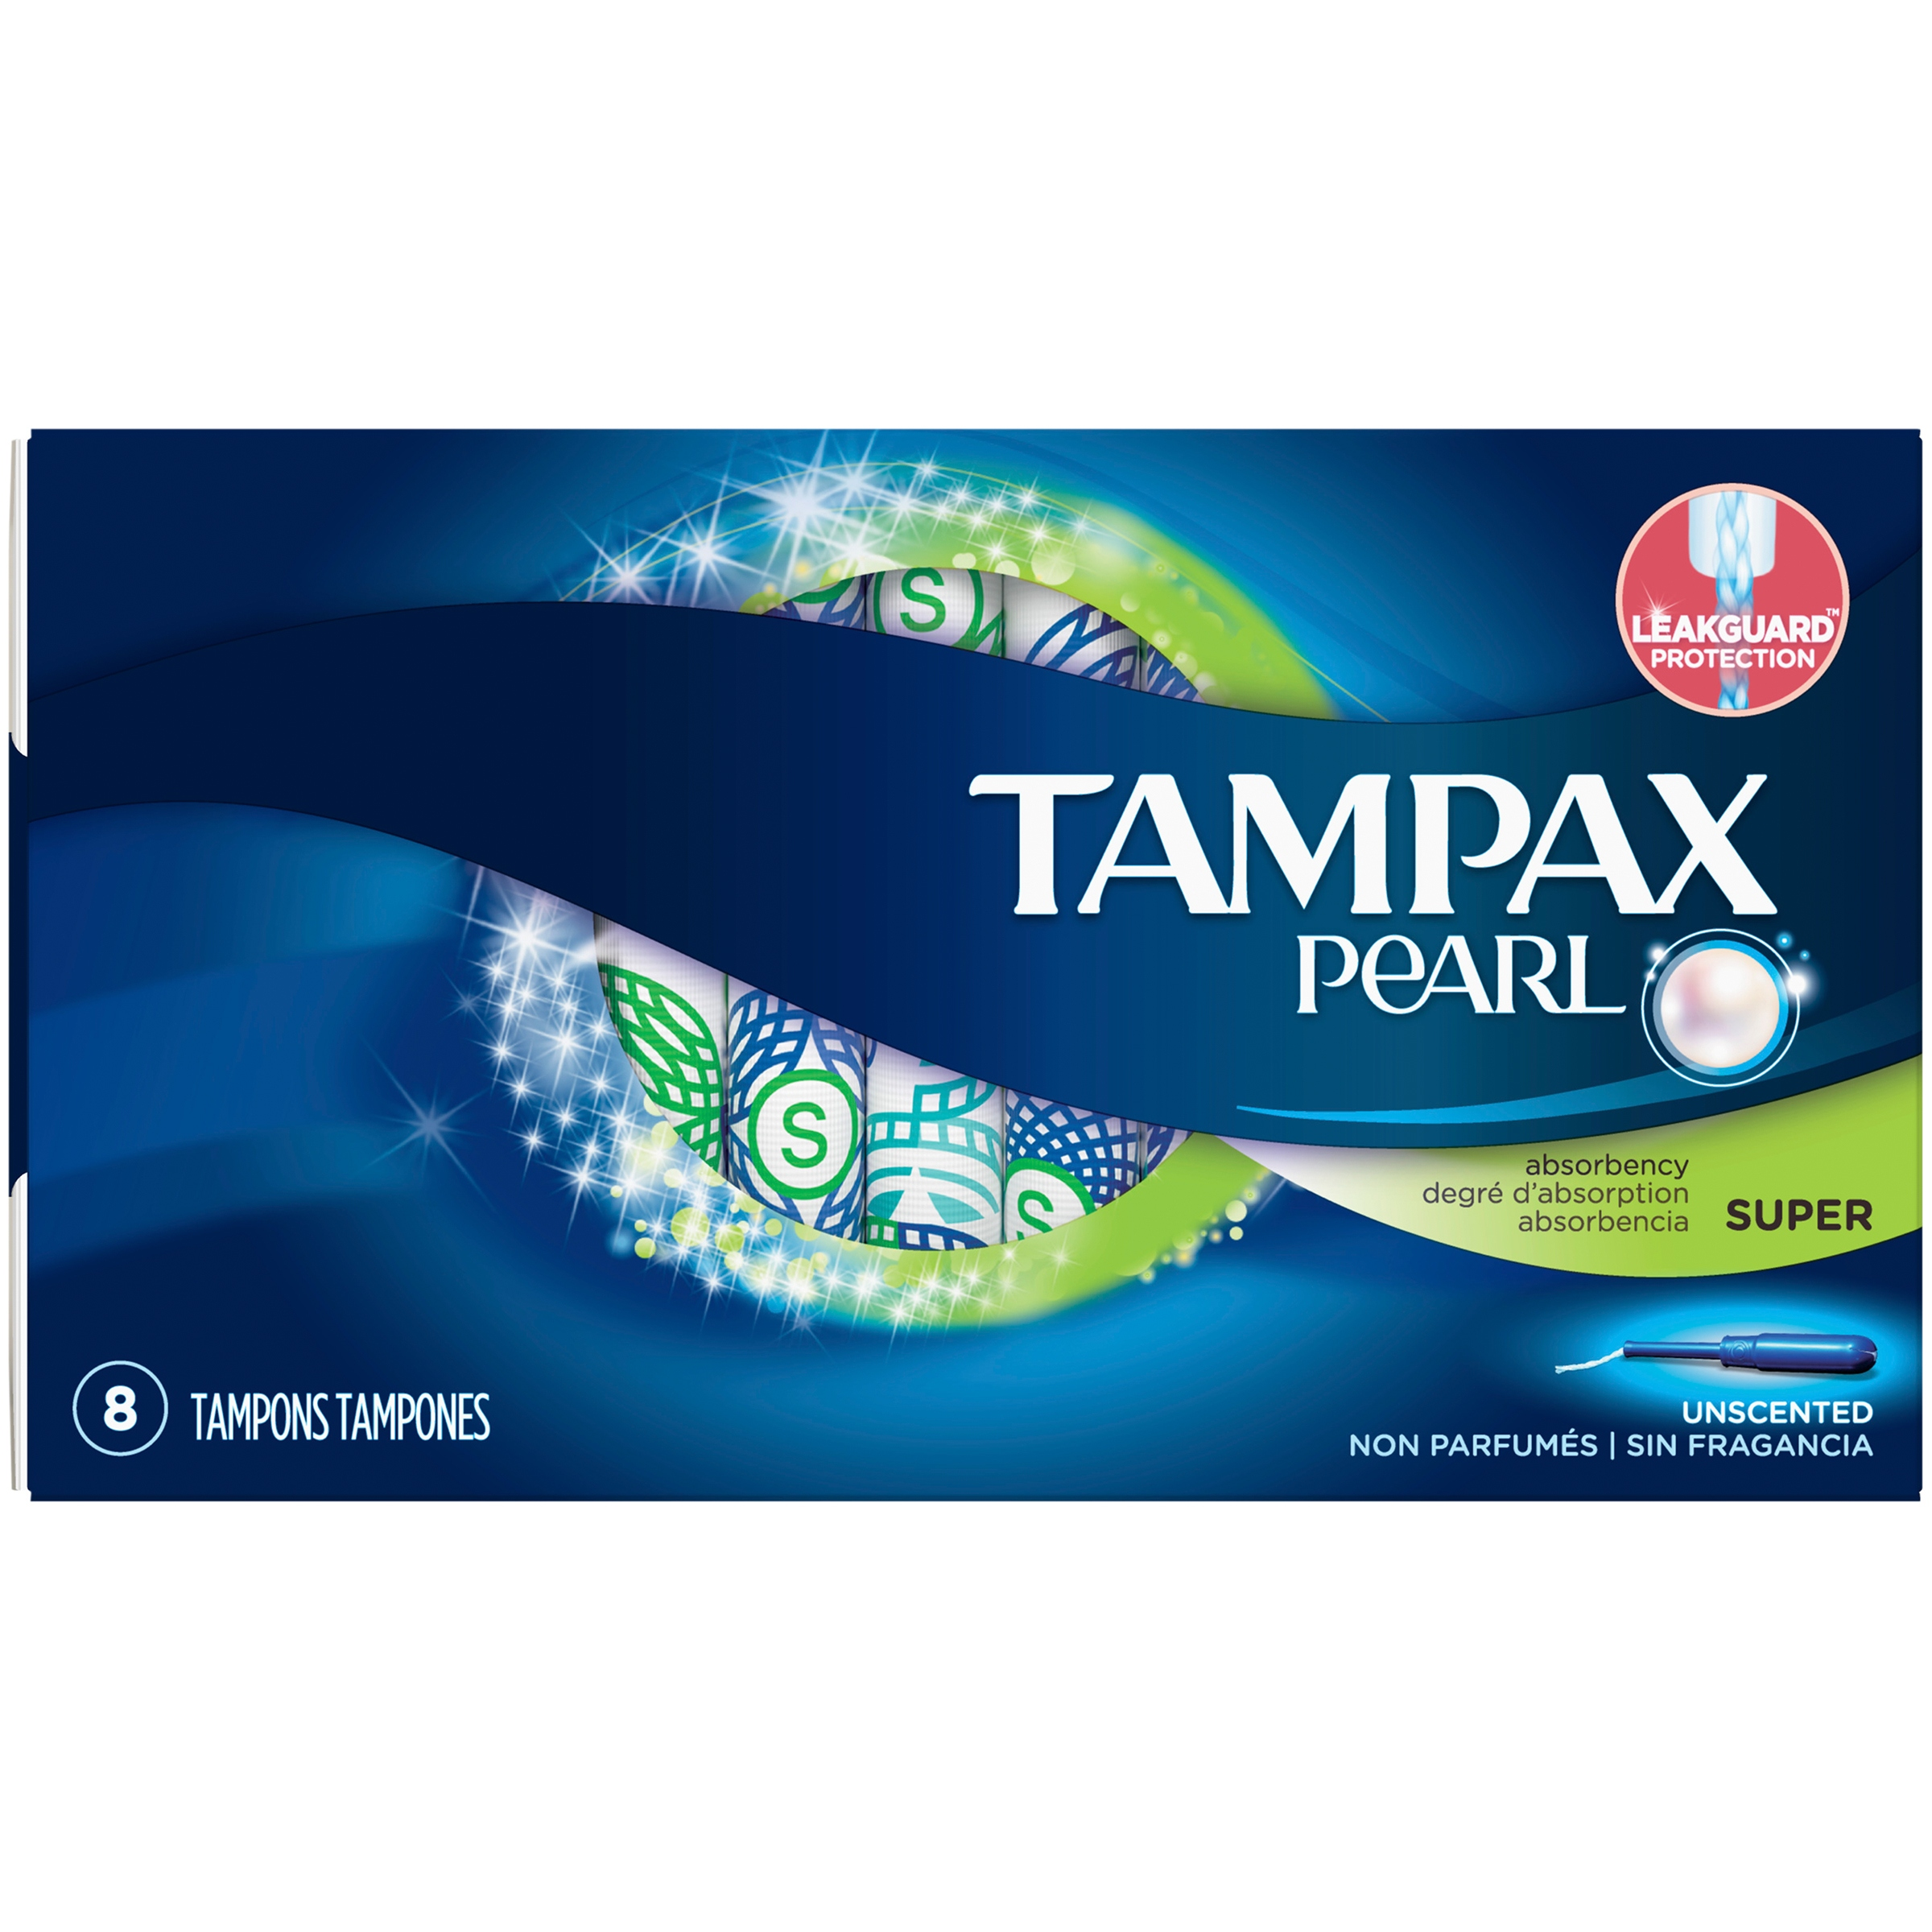 Tampax Pearl Super Unscented Tampons 8 ct Box